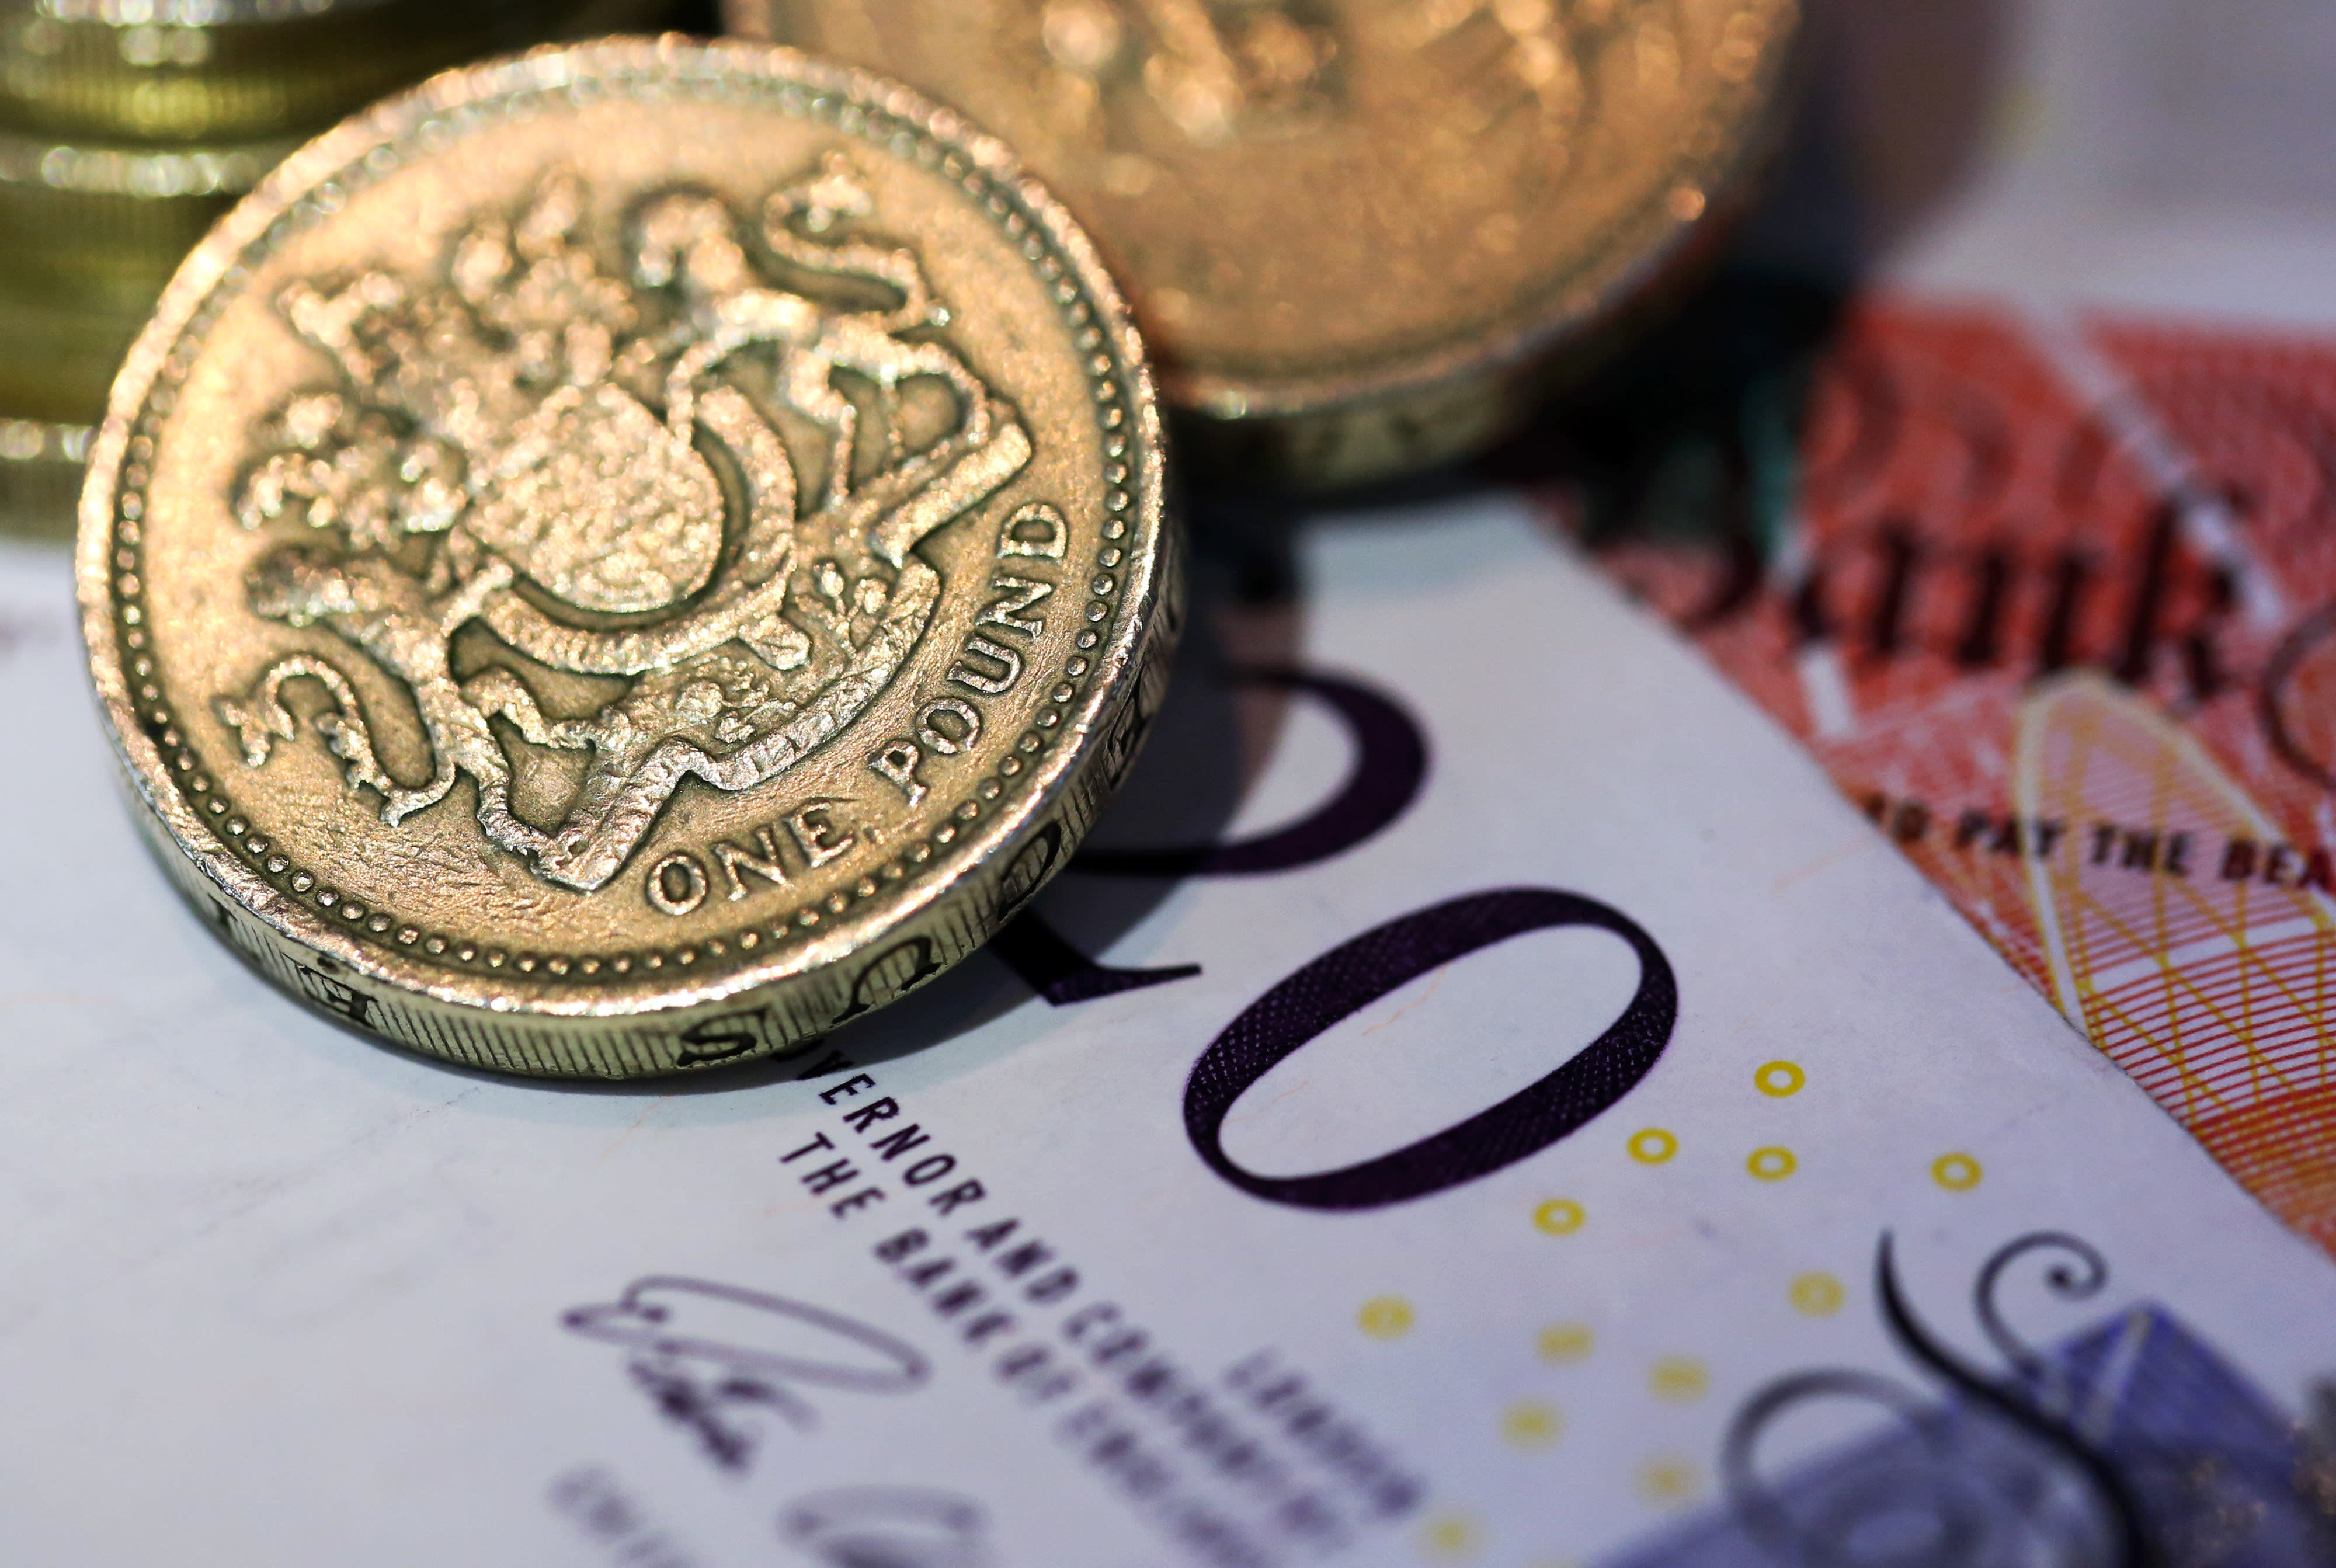 Adviser to pay out after triggering 'unnecessary' tax charge